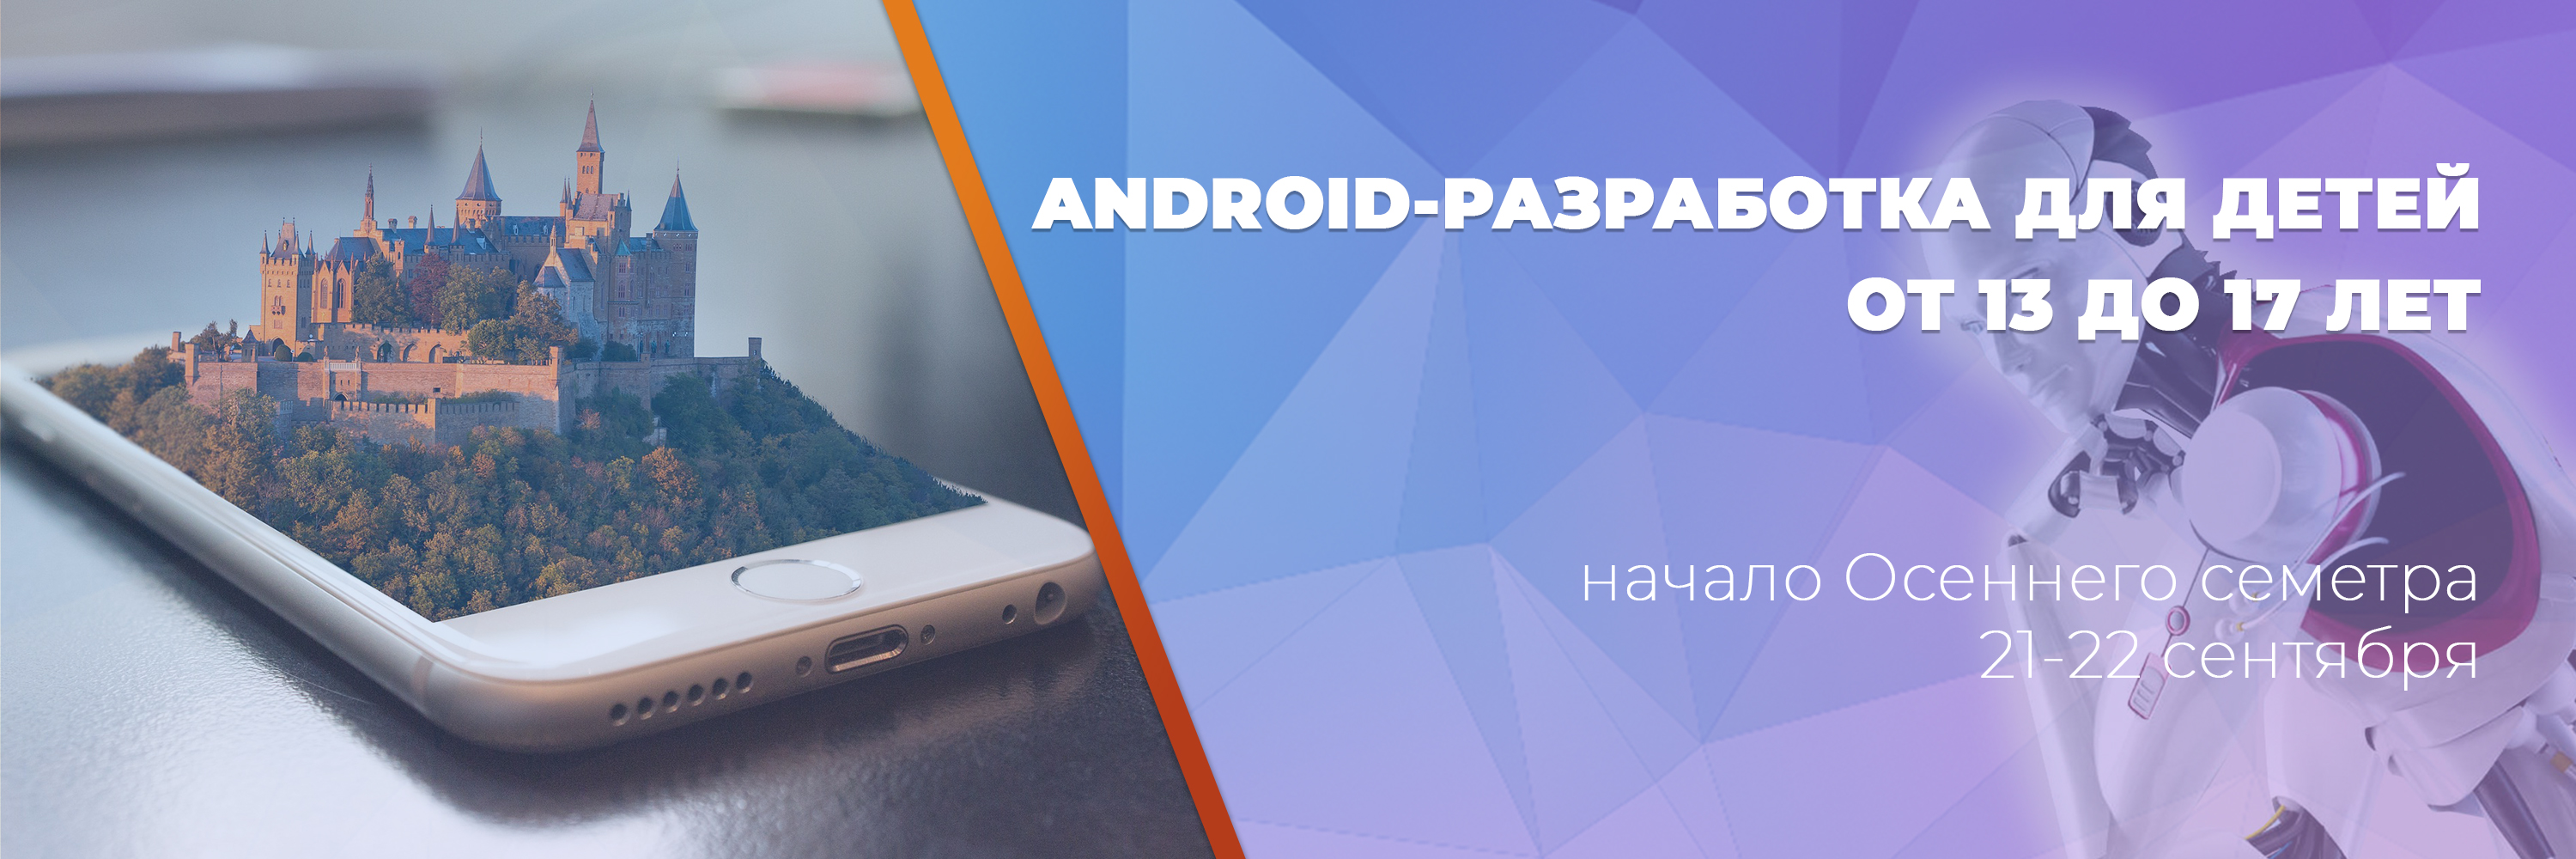 Android-разработка